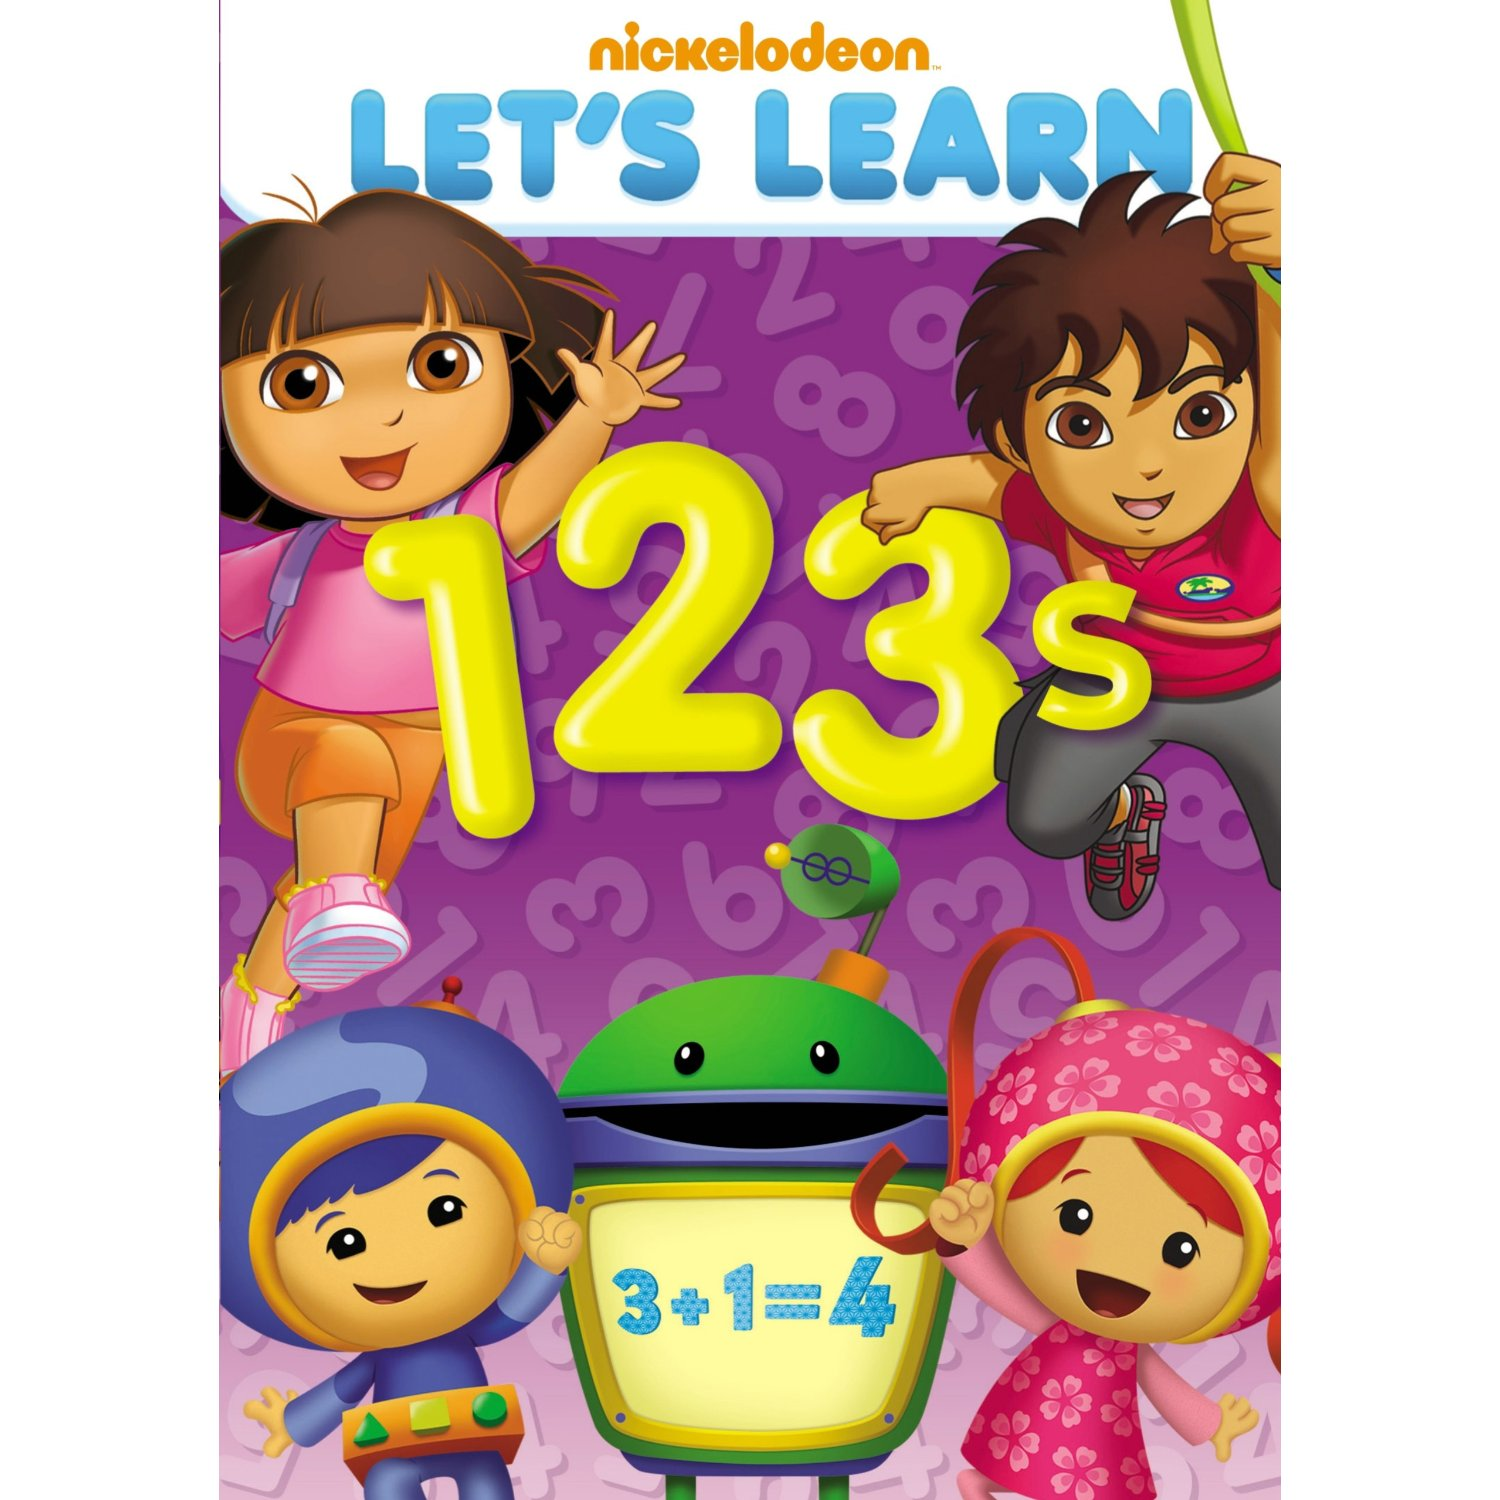 Nickelodeon S Let S Learn 123 S Dvd Review Amp Giveaway